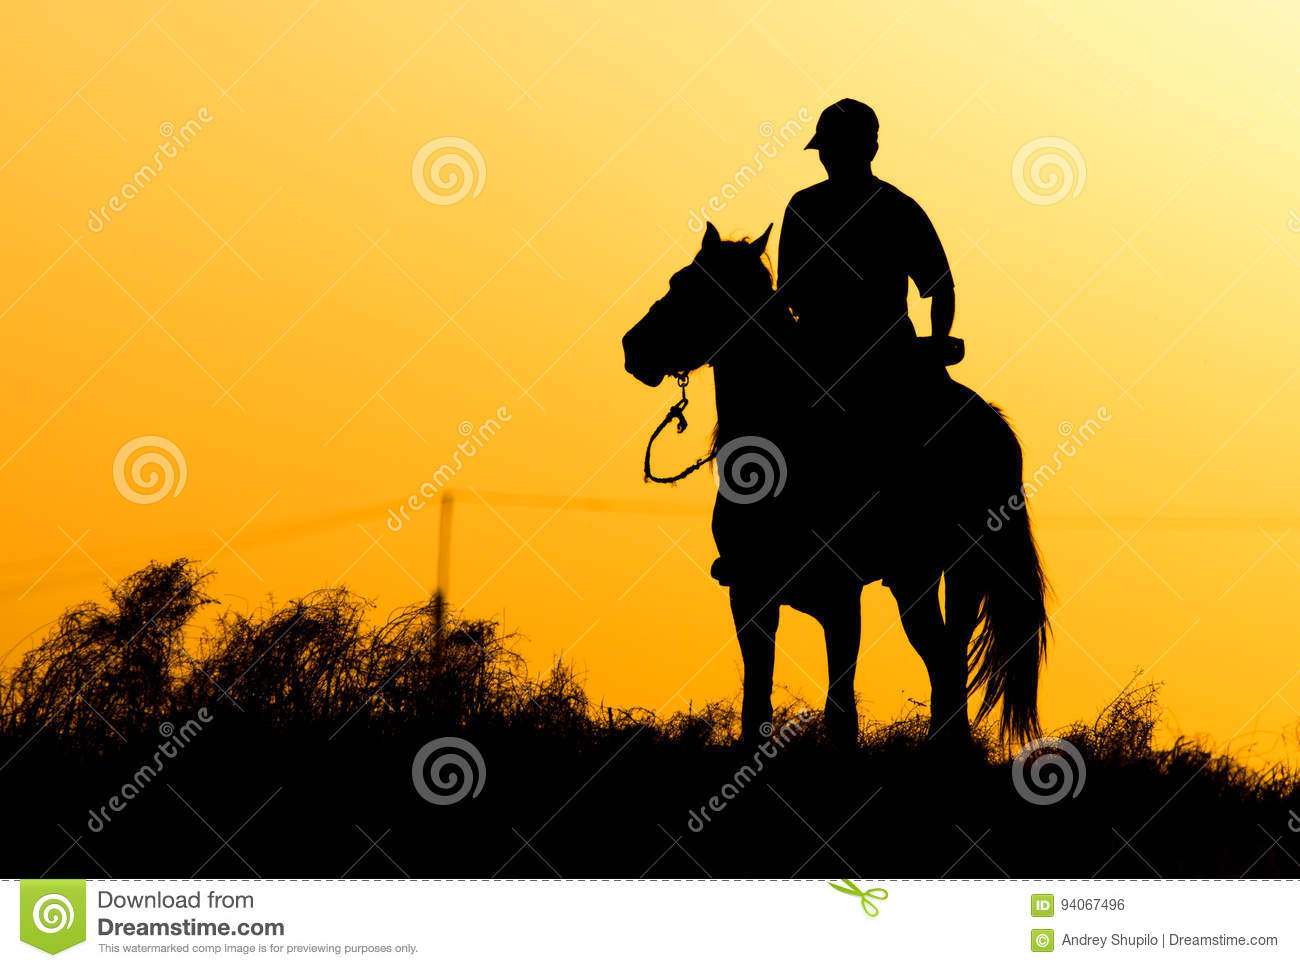 Silhouette of a man on a horse at sunset